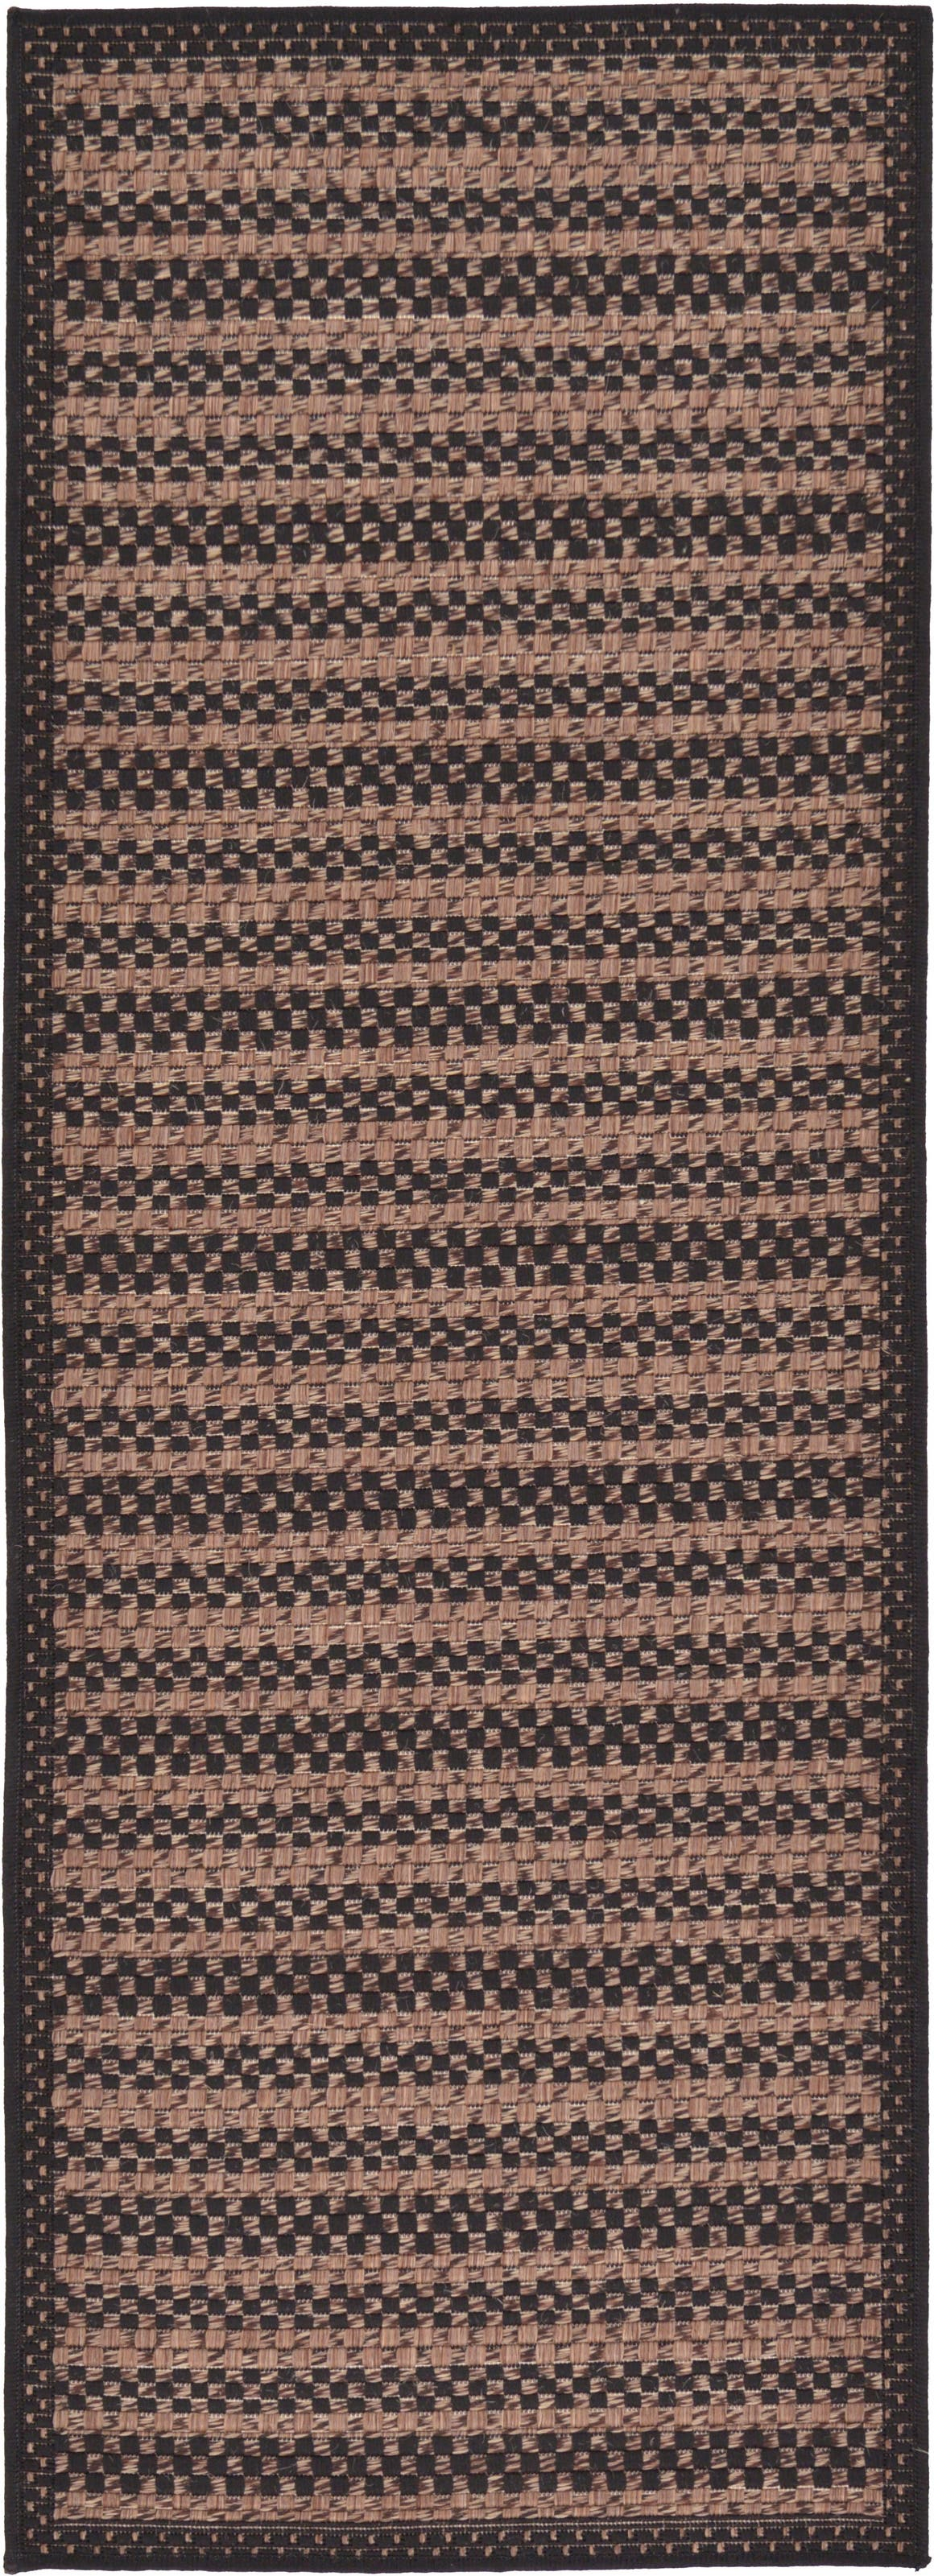 2' 2 x 6' Outdoor Border Runner Rug main image